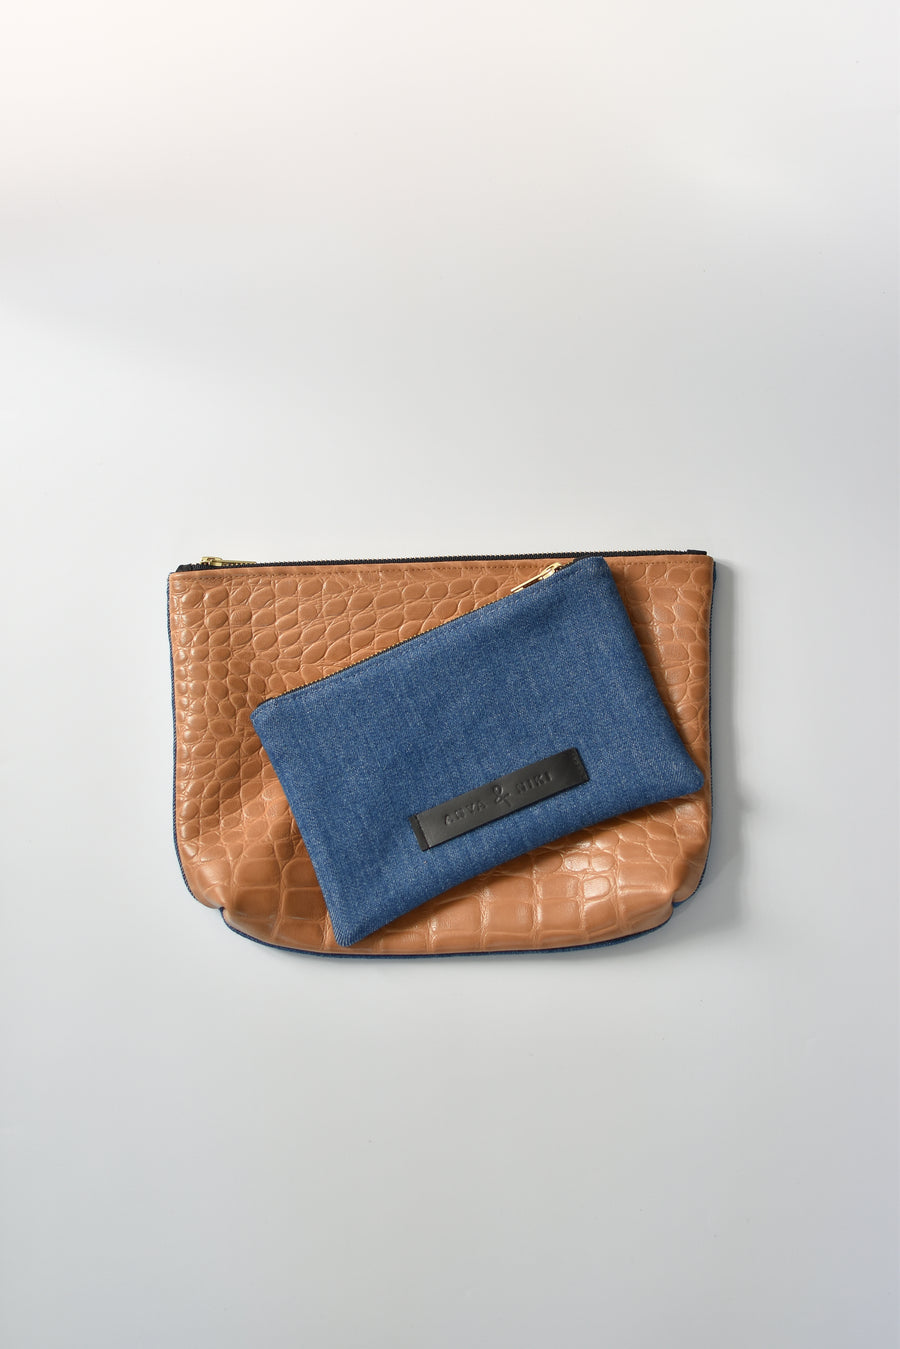 Medium wash denim and caramel colored embossed leather skin small and medium pouch with brass zipper and leather logo label.